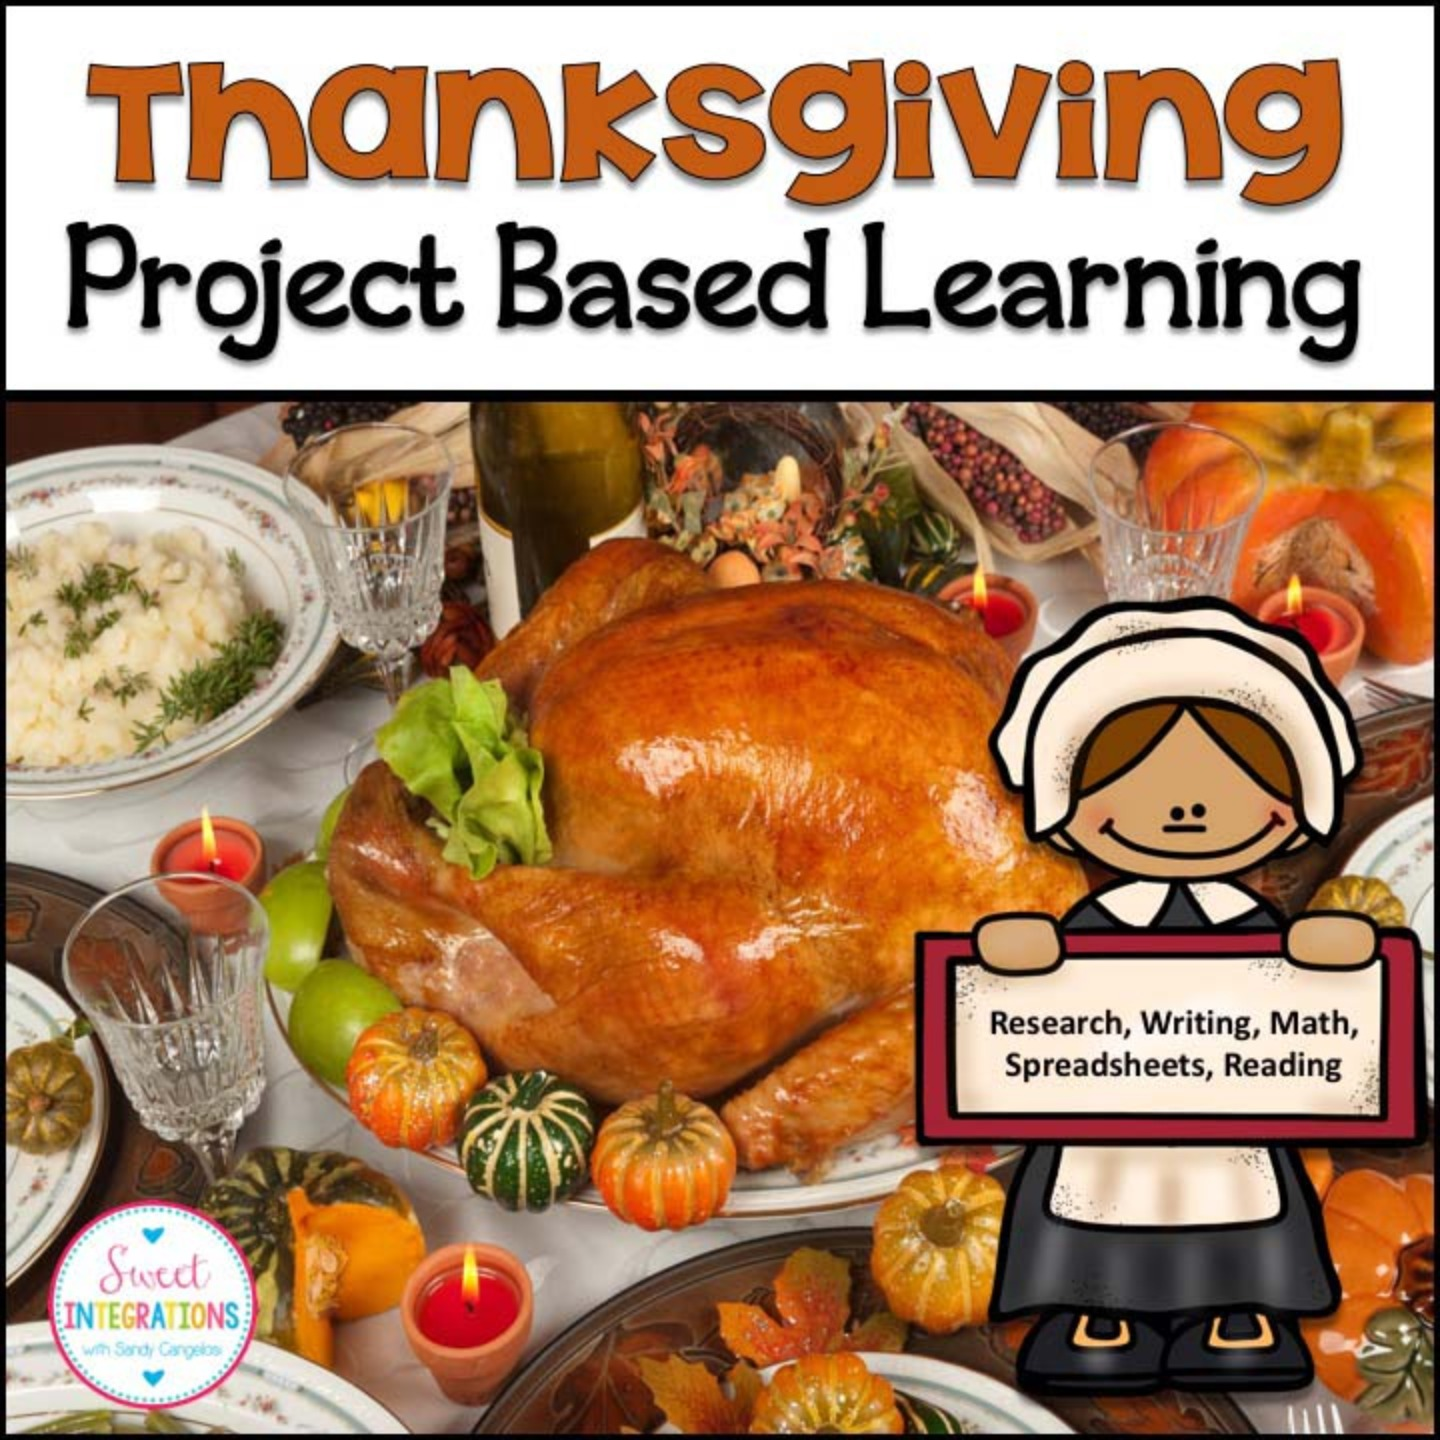 Project Based Learning: Thanksgiving